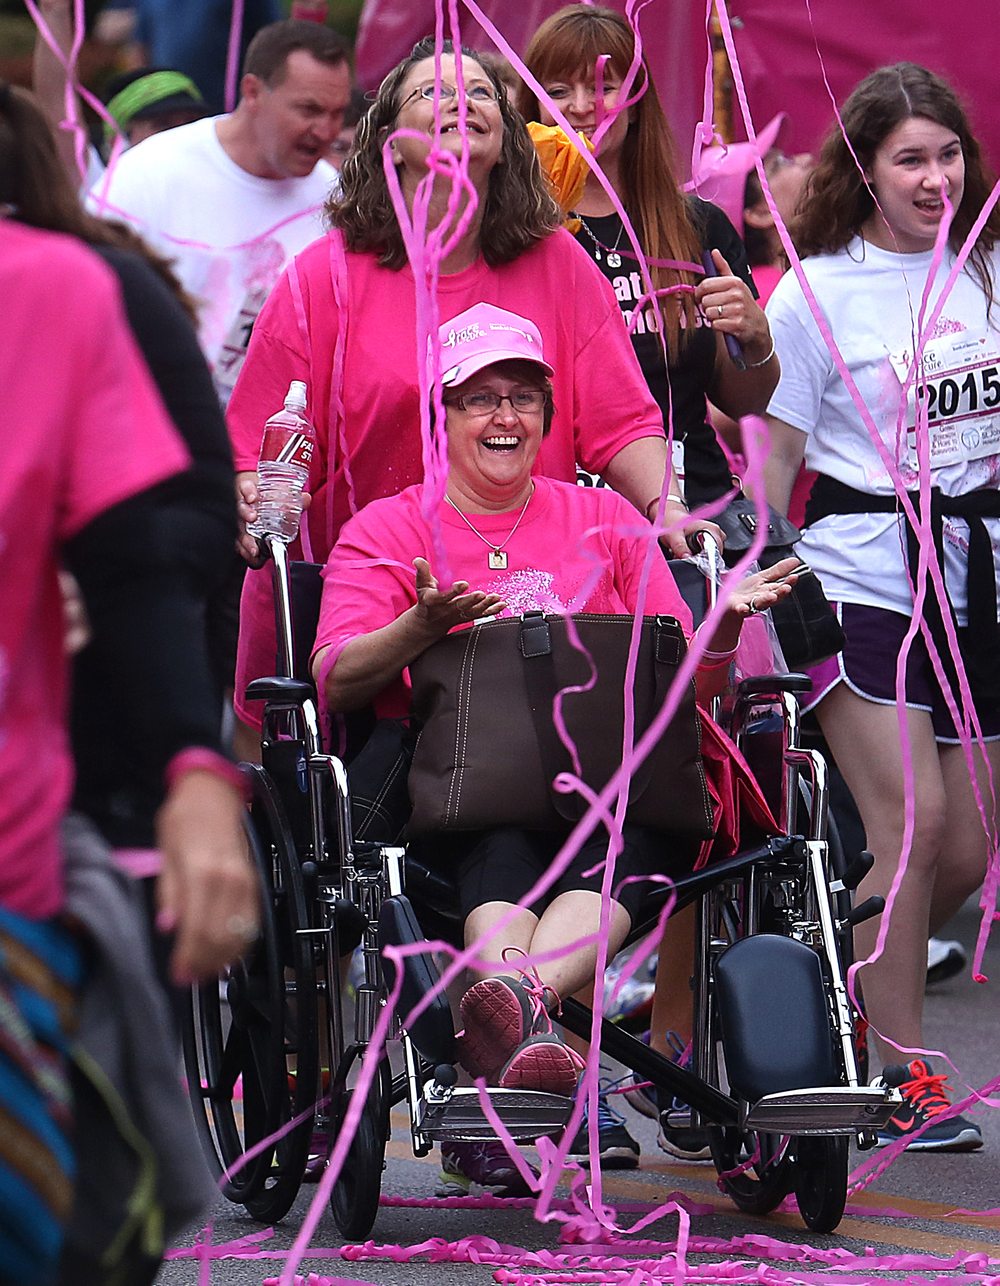 Dinah Boehm of Shelbyville, a nine-month breast cancer survivor, holds out her hands to catch streamers shot into the air at the beginning of the race on Second Street Friday night. Sandy Falk of Effingham was steering her best friend from behind. David Spencer/The State Journal-Register